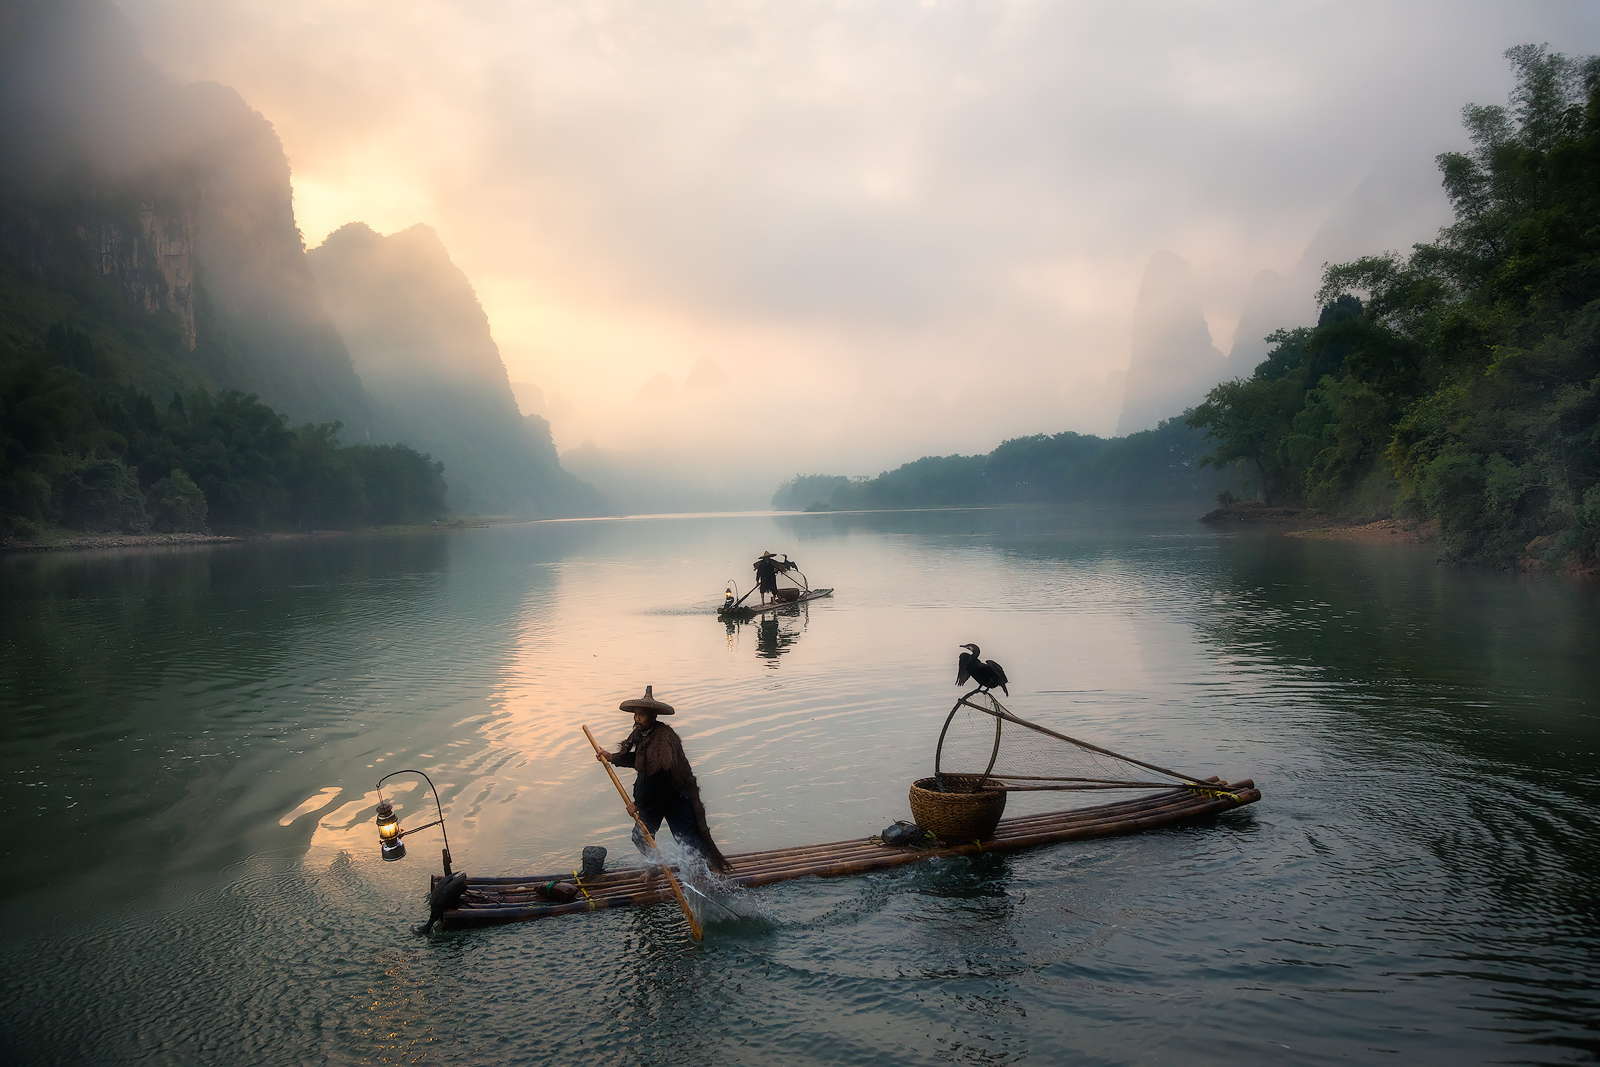 2017, chinese, clouds, cormorant, bird, fisherman, fishing, foggy, karst mountains, li river, model location, morning, river, silhouette, sunrise, yangshuo, photo